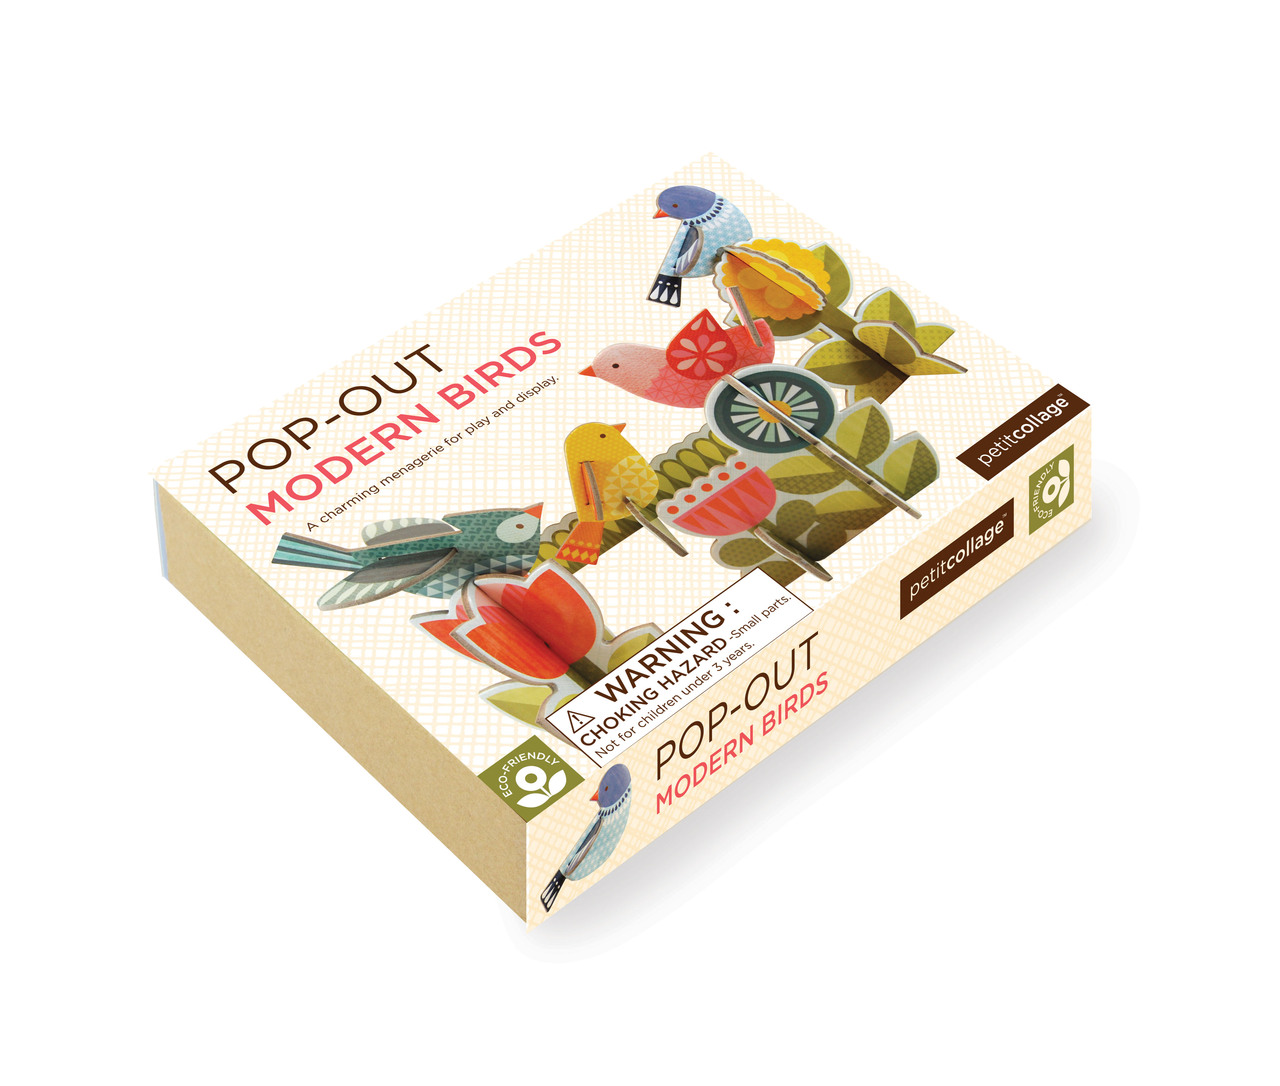 Petit Collage Pop-out and Play Modern Birds Packaging